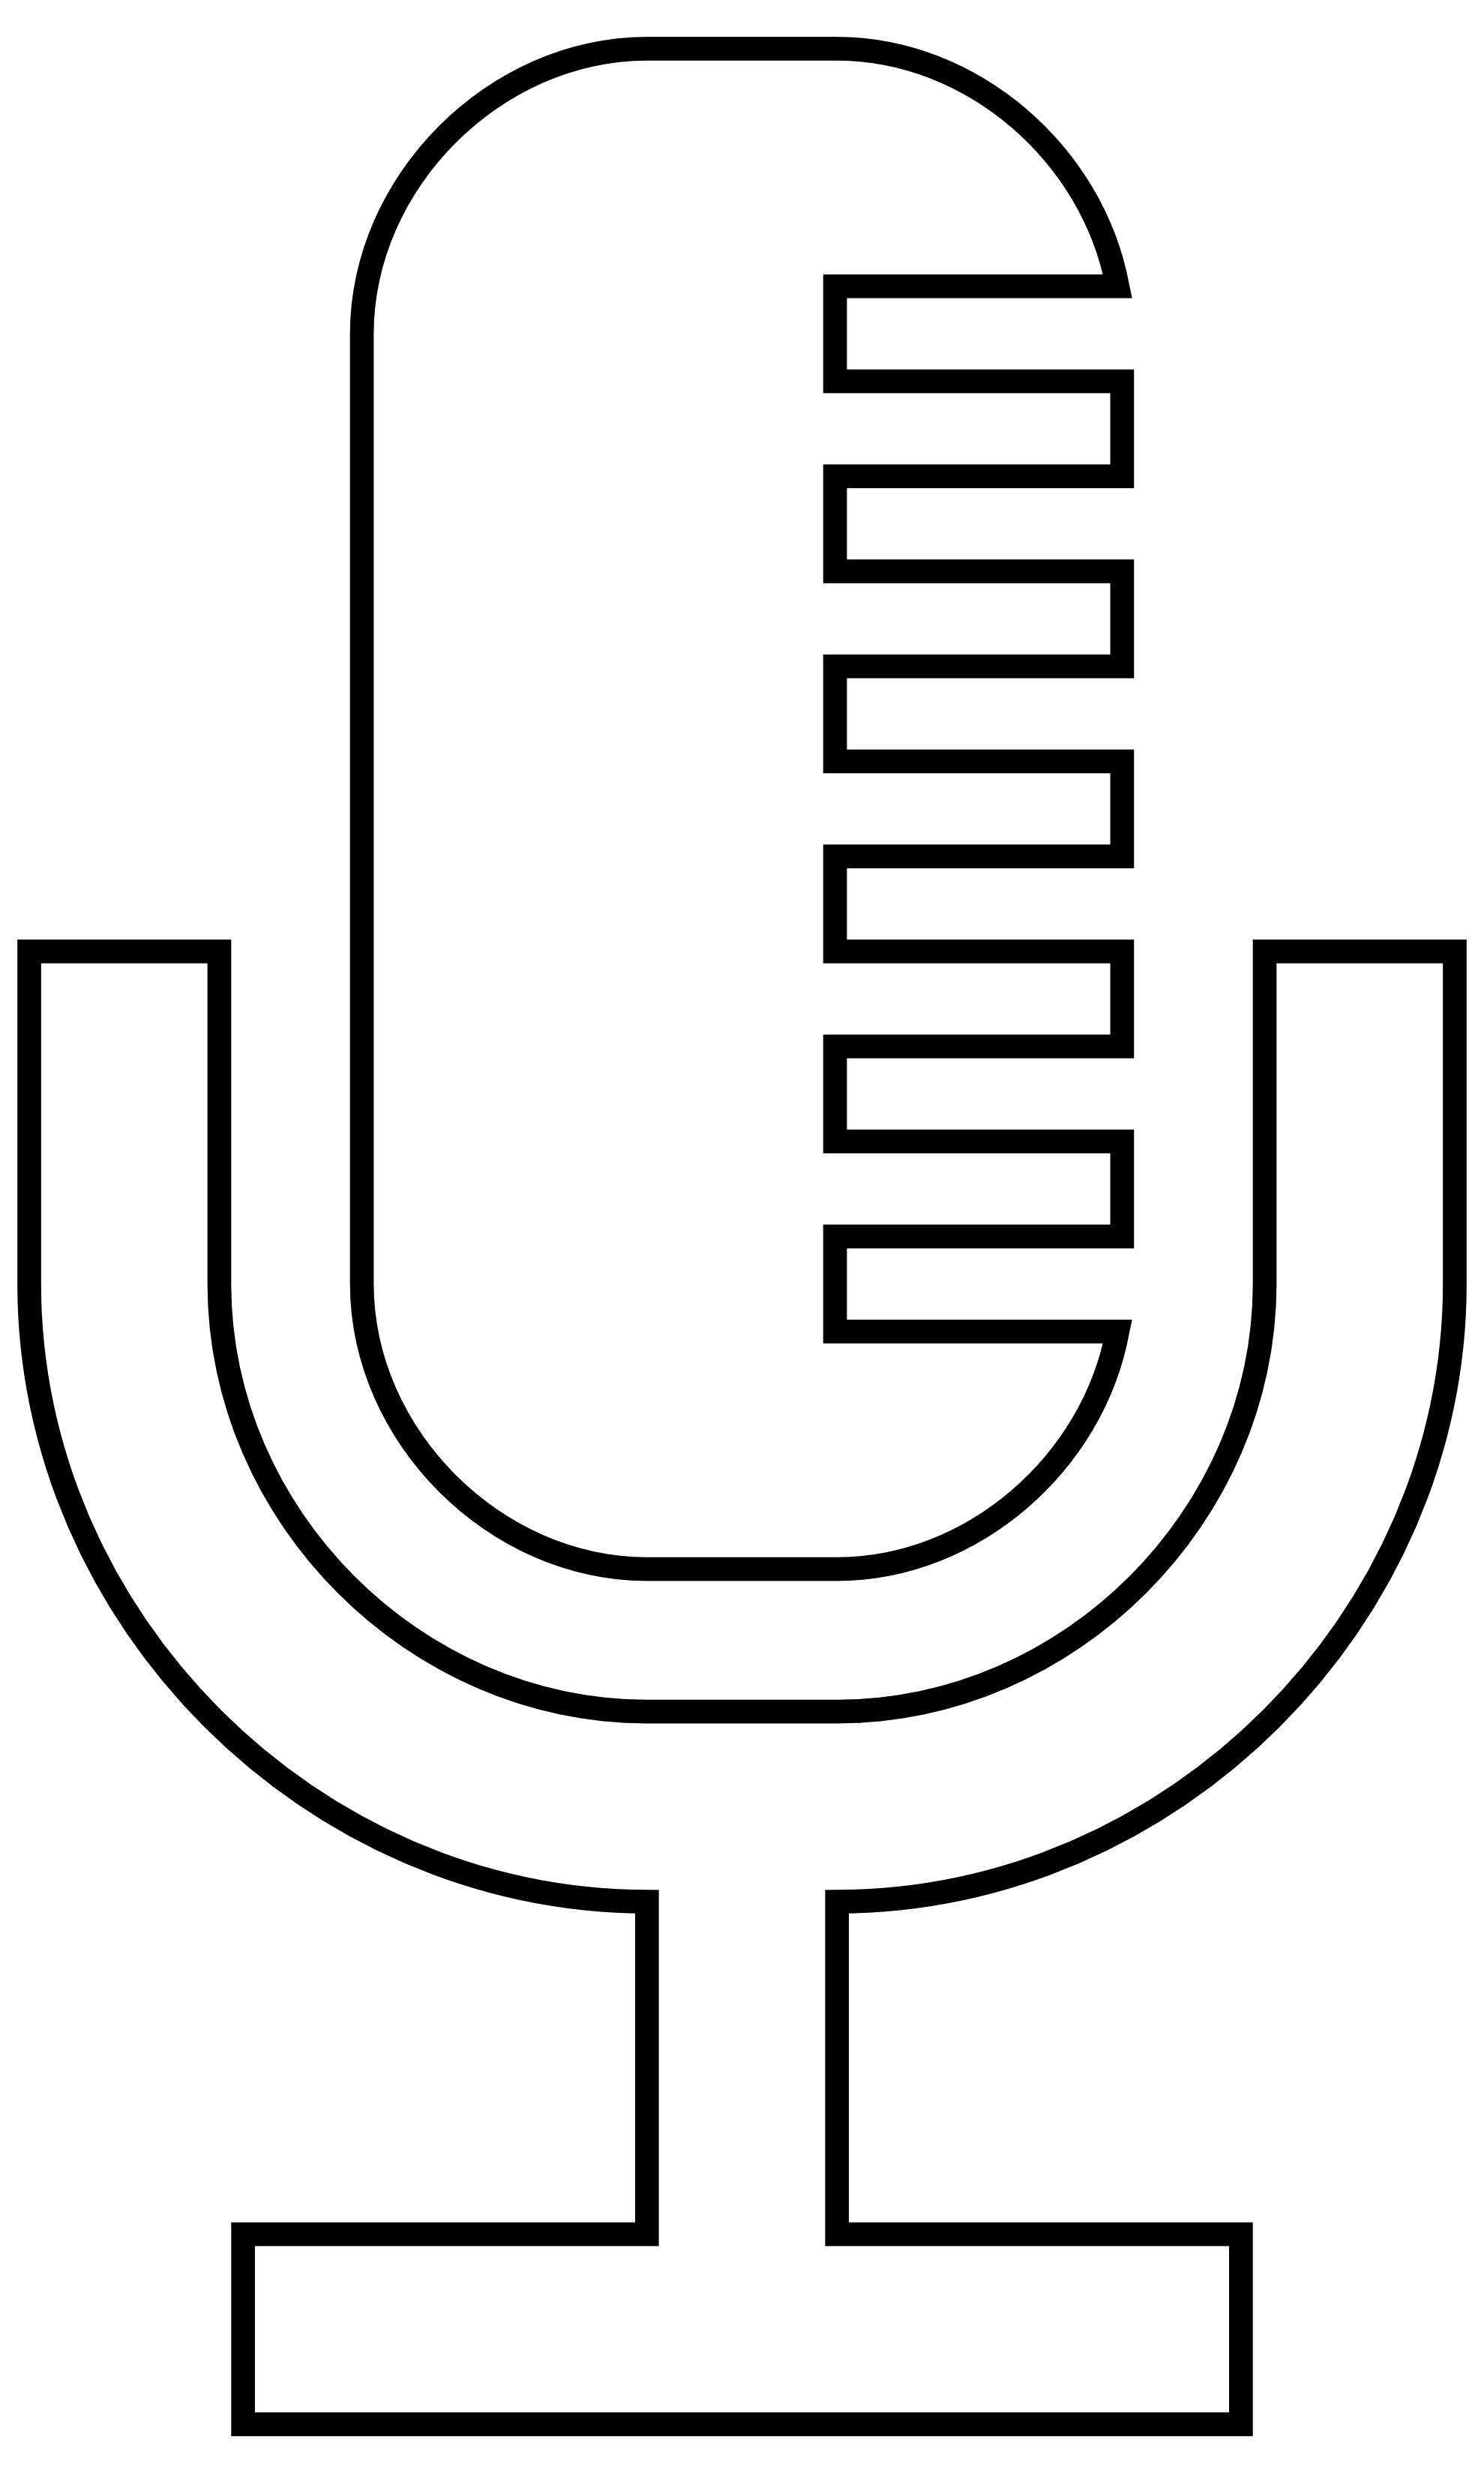 Free Picture Of Microphone, Download Free Clip Art, Free.